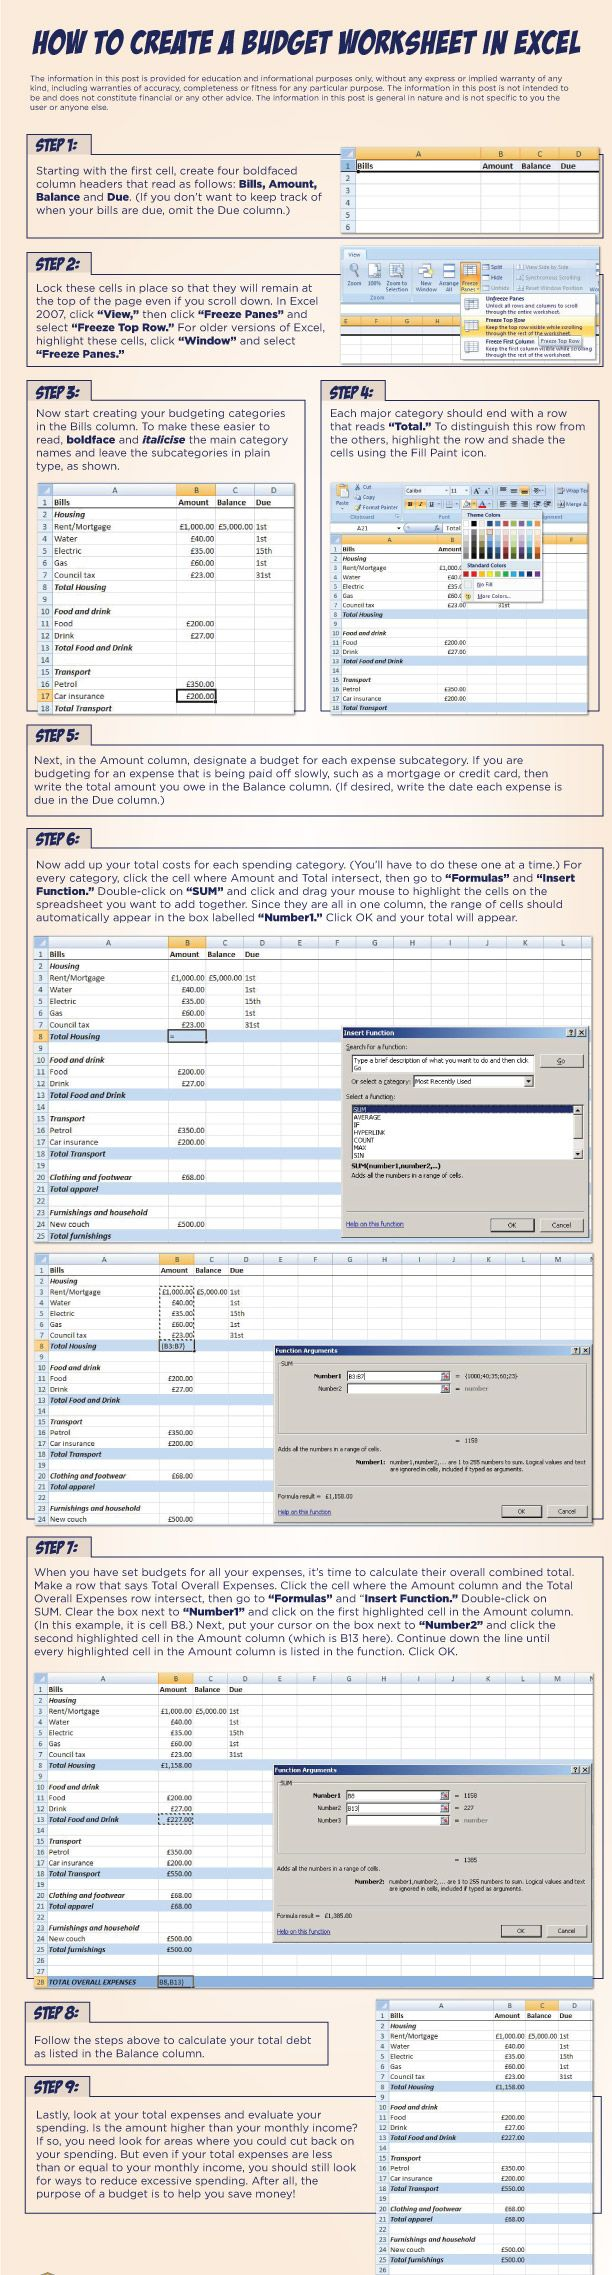 Best 25 Excel budget ideas – Budget Worksheet Excel